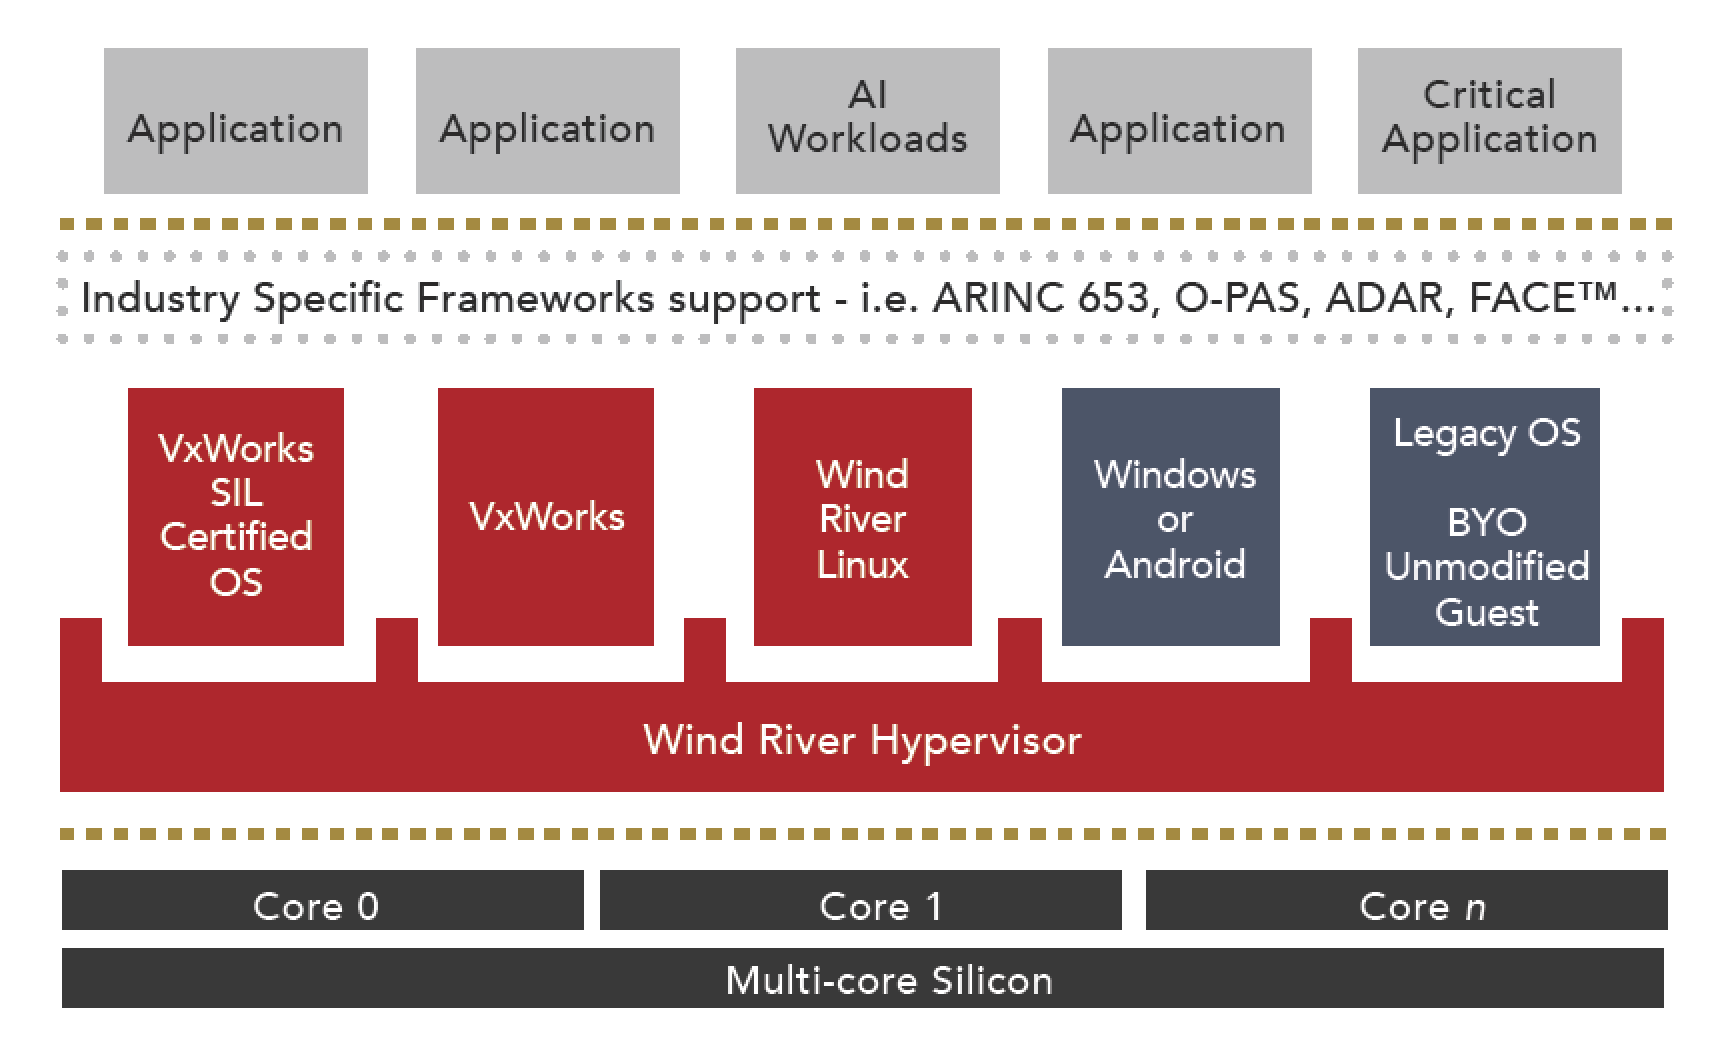 Figure 3 – Reference architecture for the Helix Platform Type 1 Hypervisor, which enables multiple embedded systems to run on a single piece of silicon